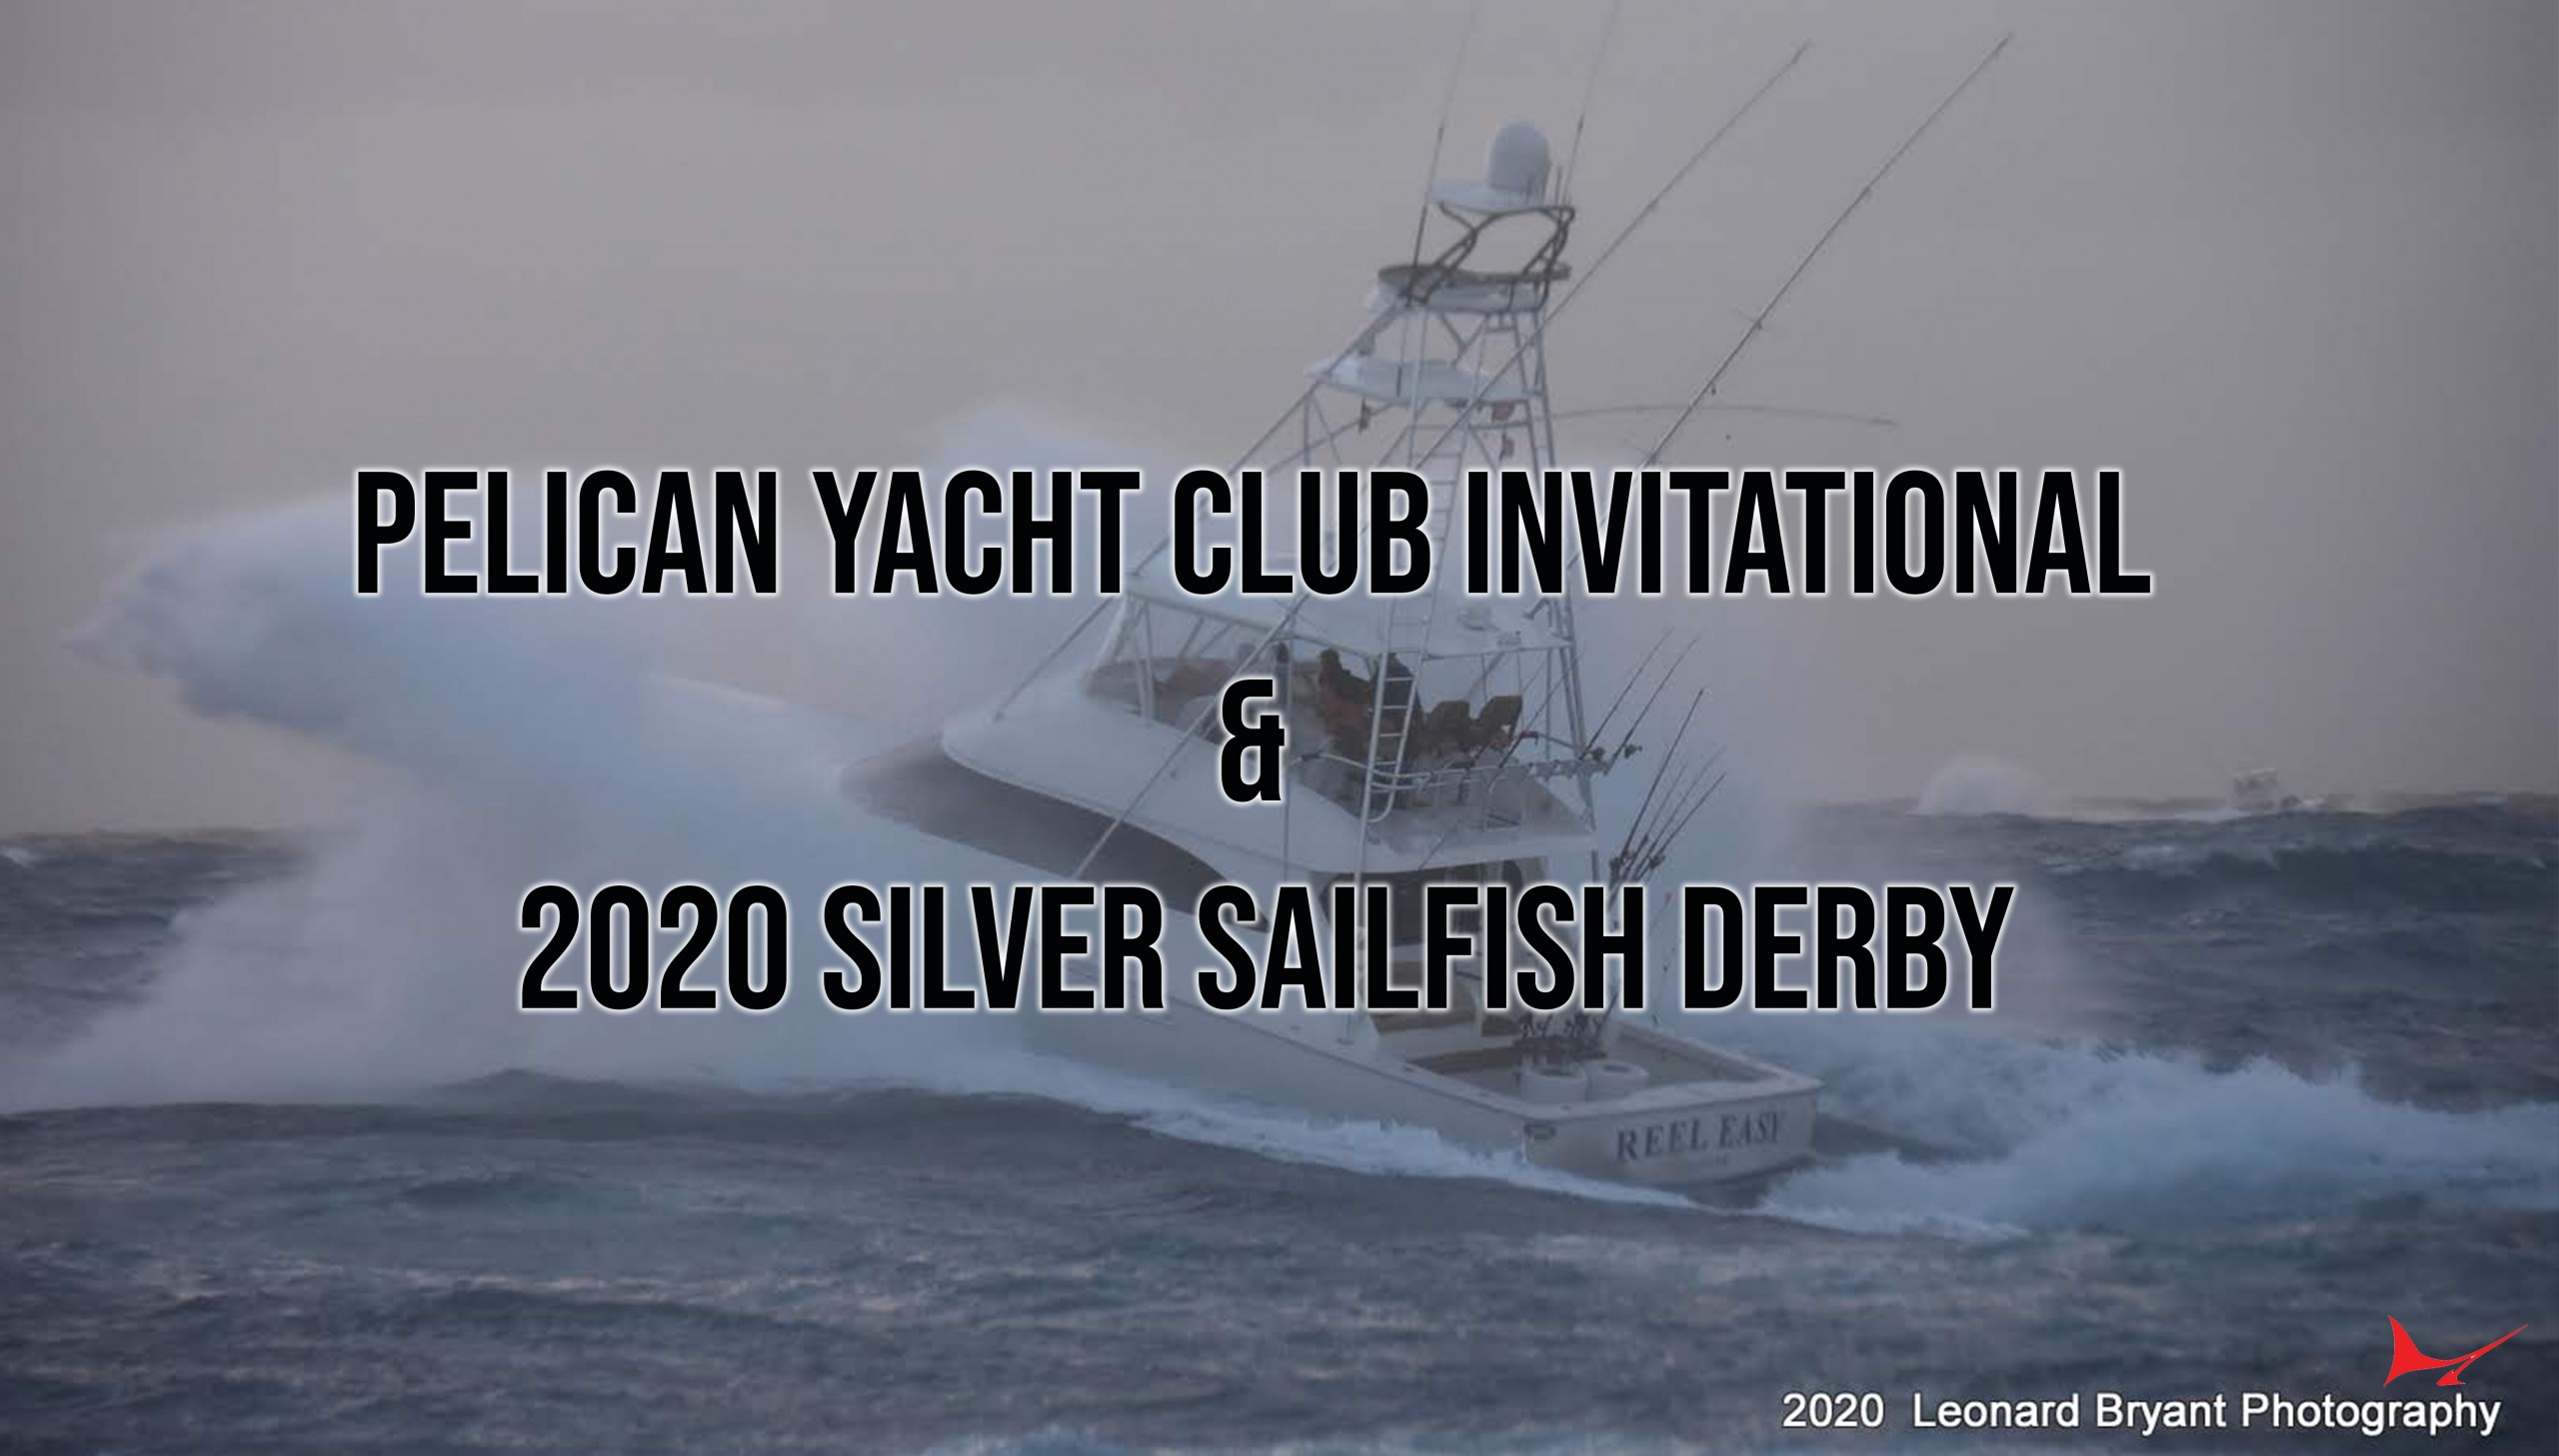 Results: Pelican Yacht Club Invitational & 2020 Silver Sailfish Derby